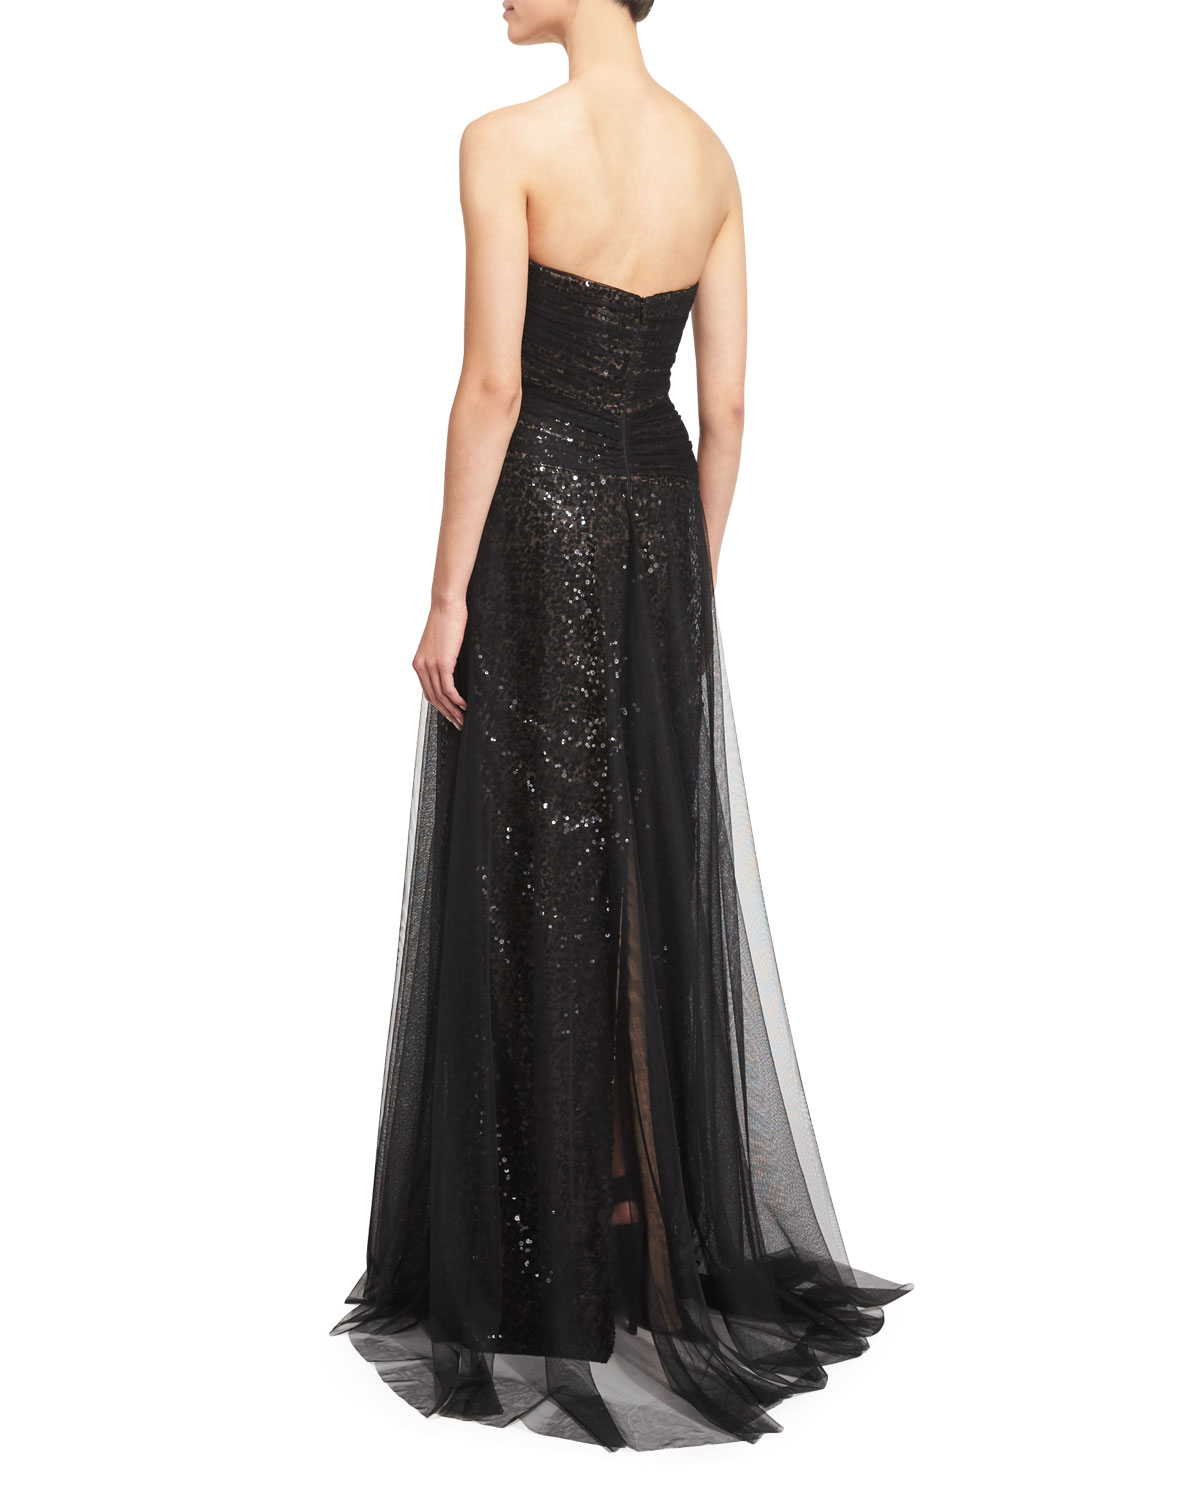 a3e09659 Marchesa Notte Strapless Sequined Tulle Overlay Gown   Neiman Marcus